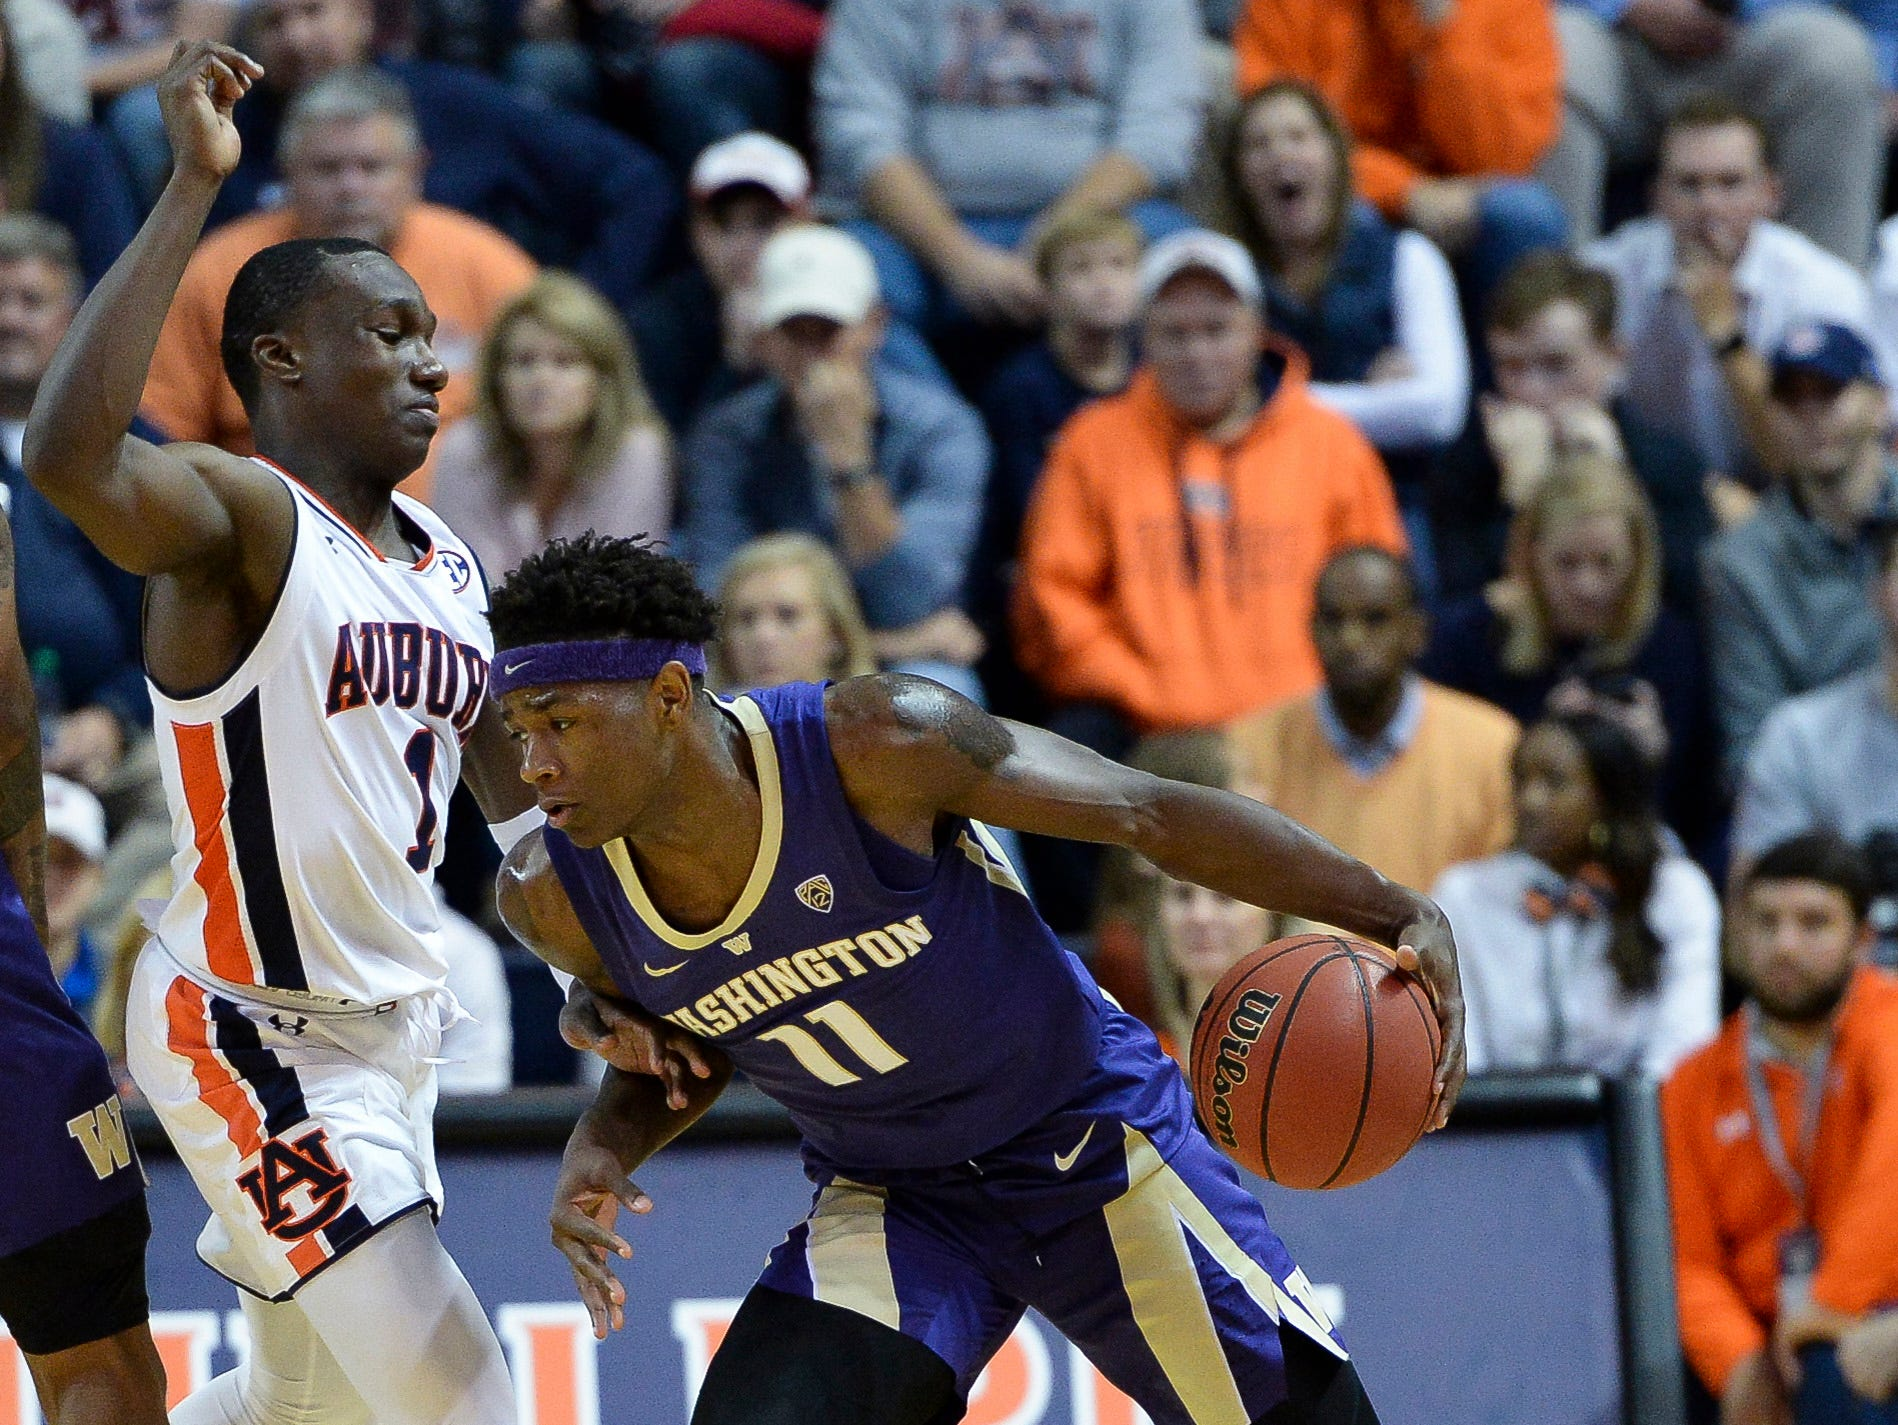 Nov 9, 2018; Auburn, AL, USA; Washington Huskies forward Nahziah Carter (11) dribbles the ball past Auburn Tigers guard Jared Harper (1) at Auburn Arena. Mandatory Credit: Julie Bennett-USA TODAY Sports